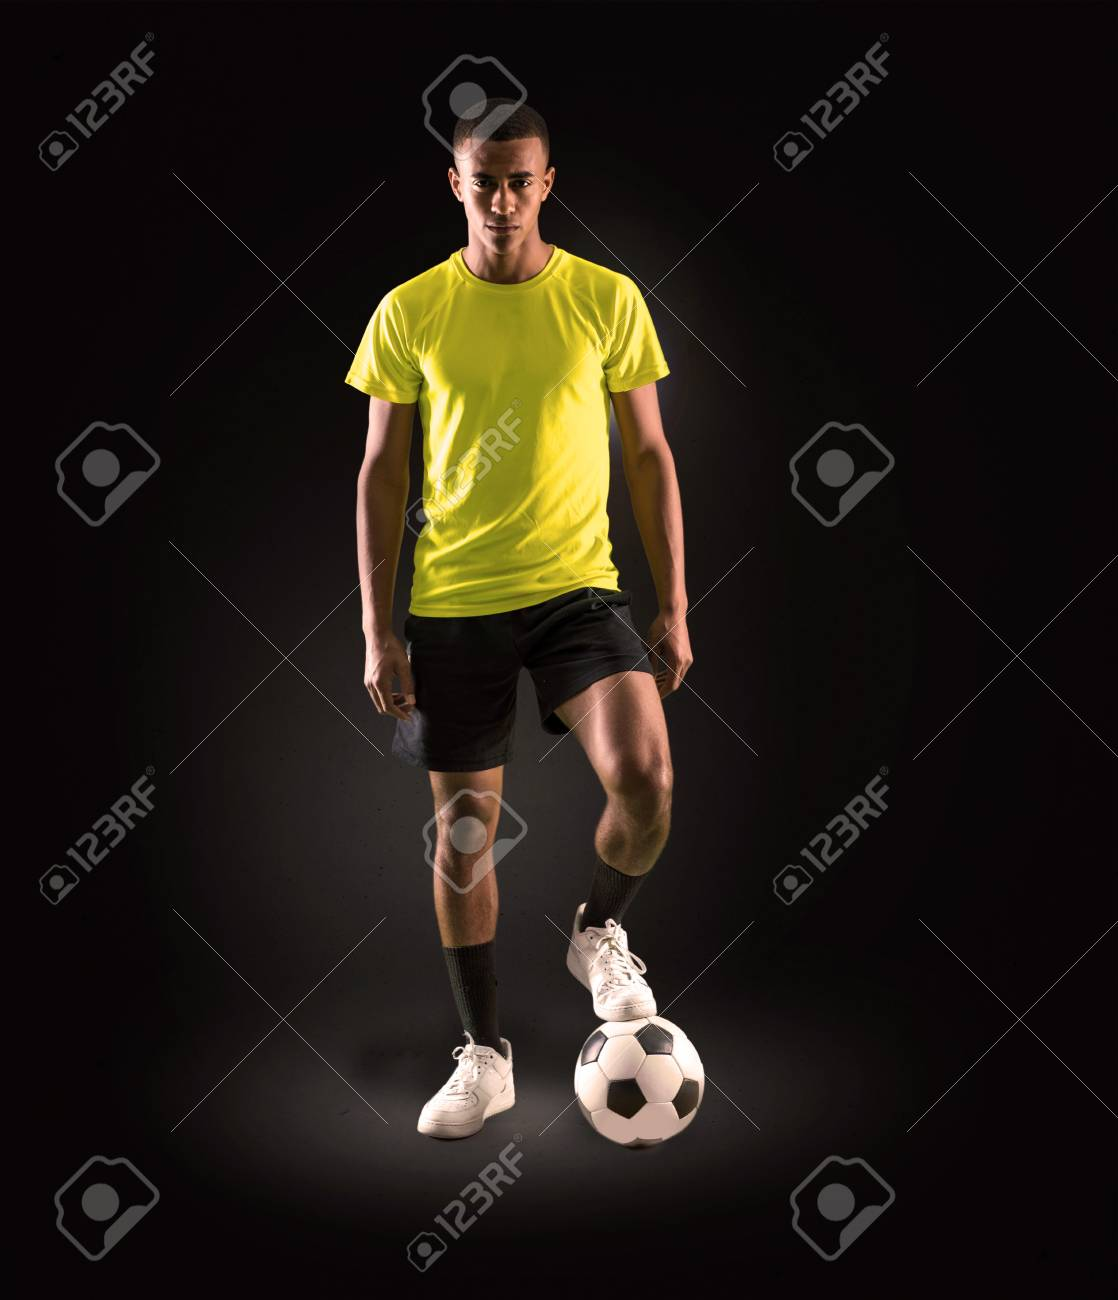 Soccer player man with dark skinned playing on dark background - 113780774